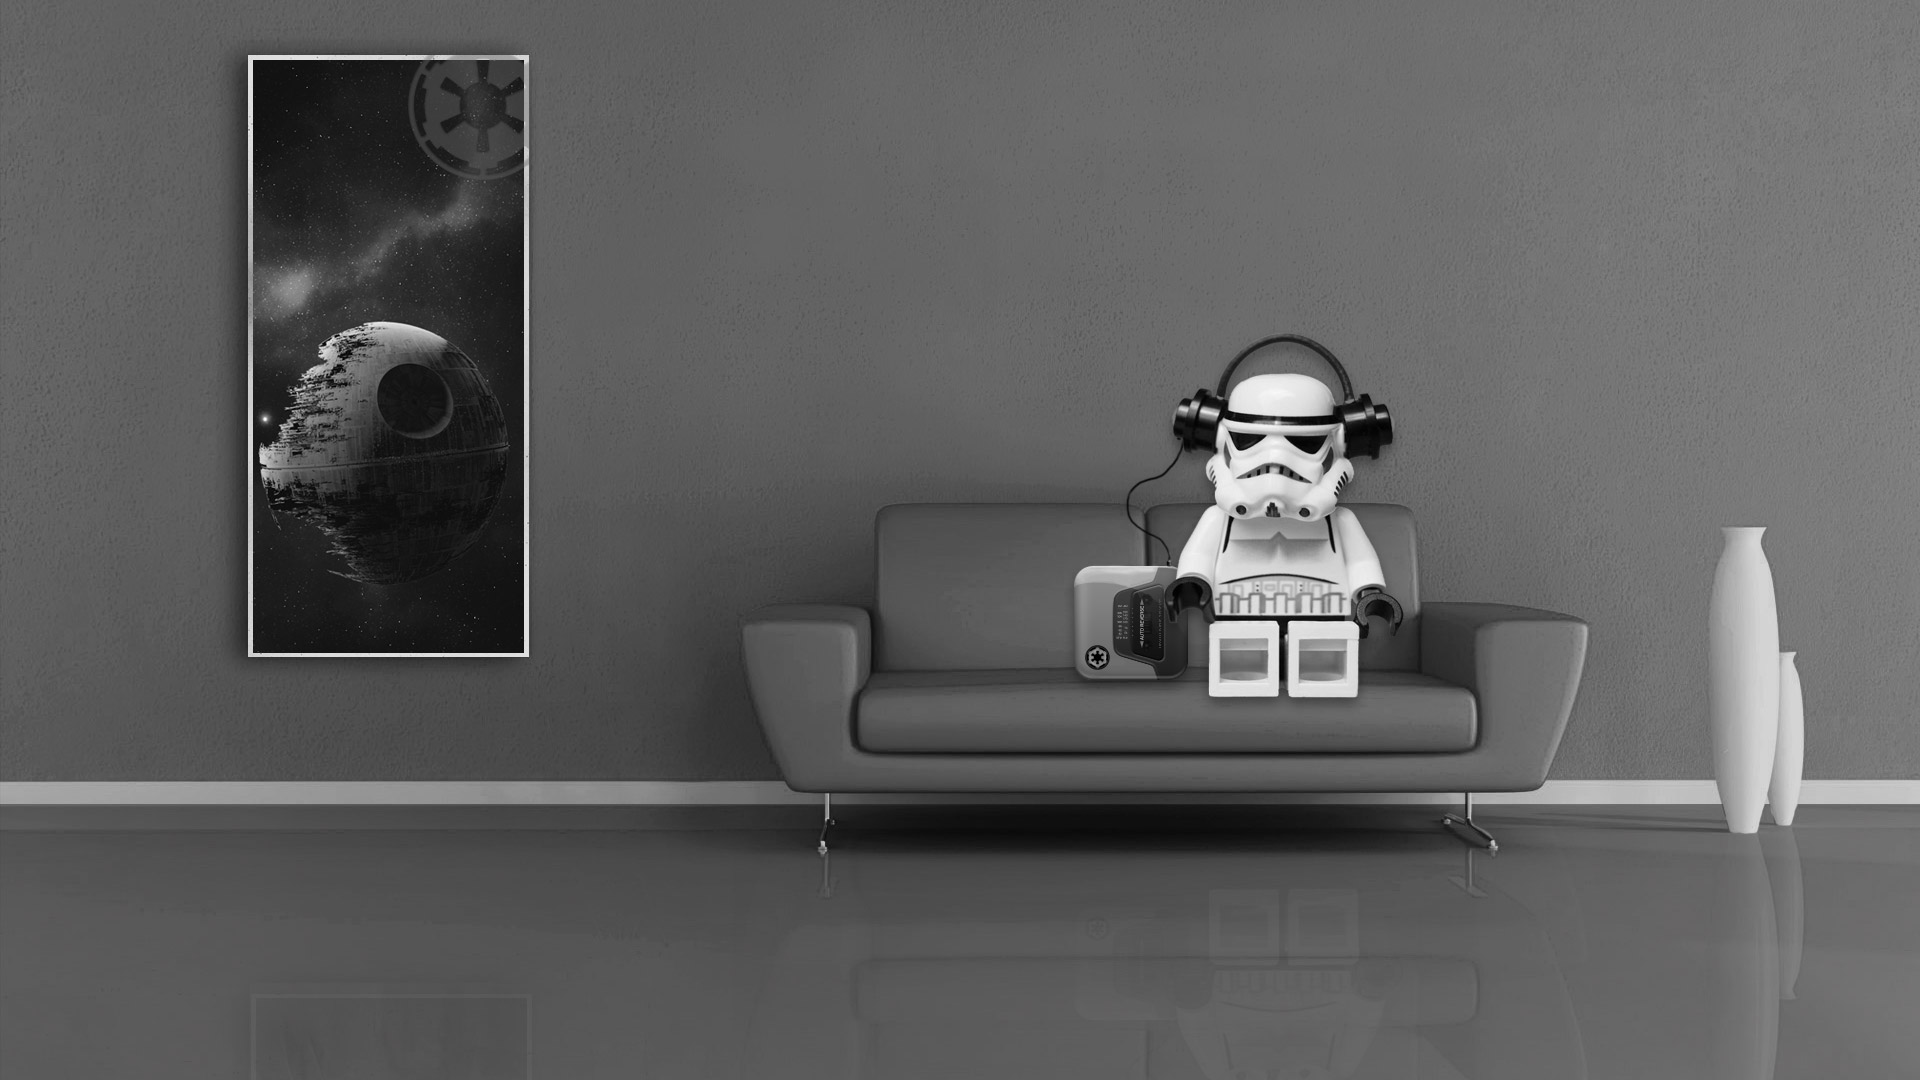 3d Wallpaper For Mobile 480x800 Stormtrooper Lego Star Wars Hd Artist 4k Wallpapers